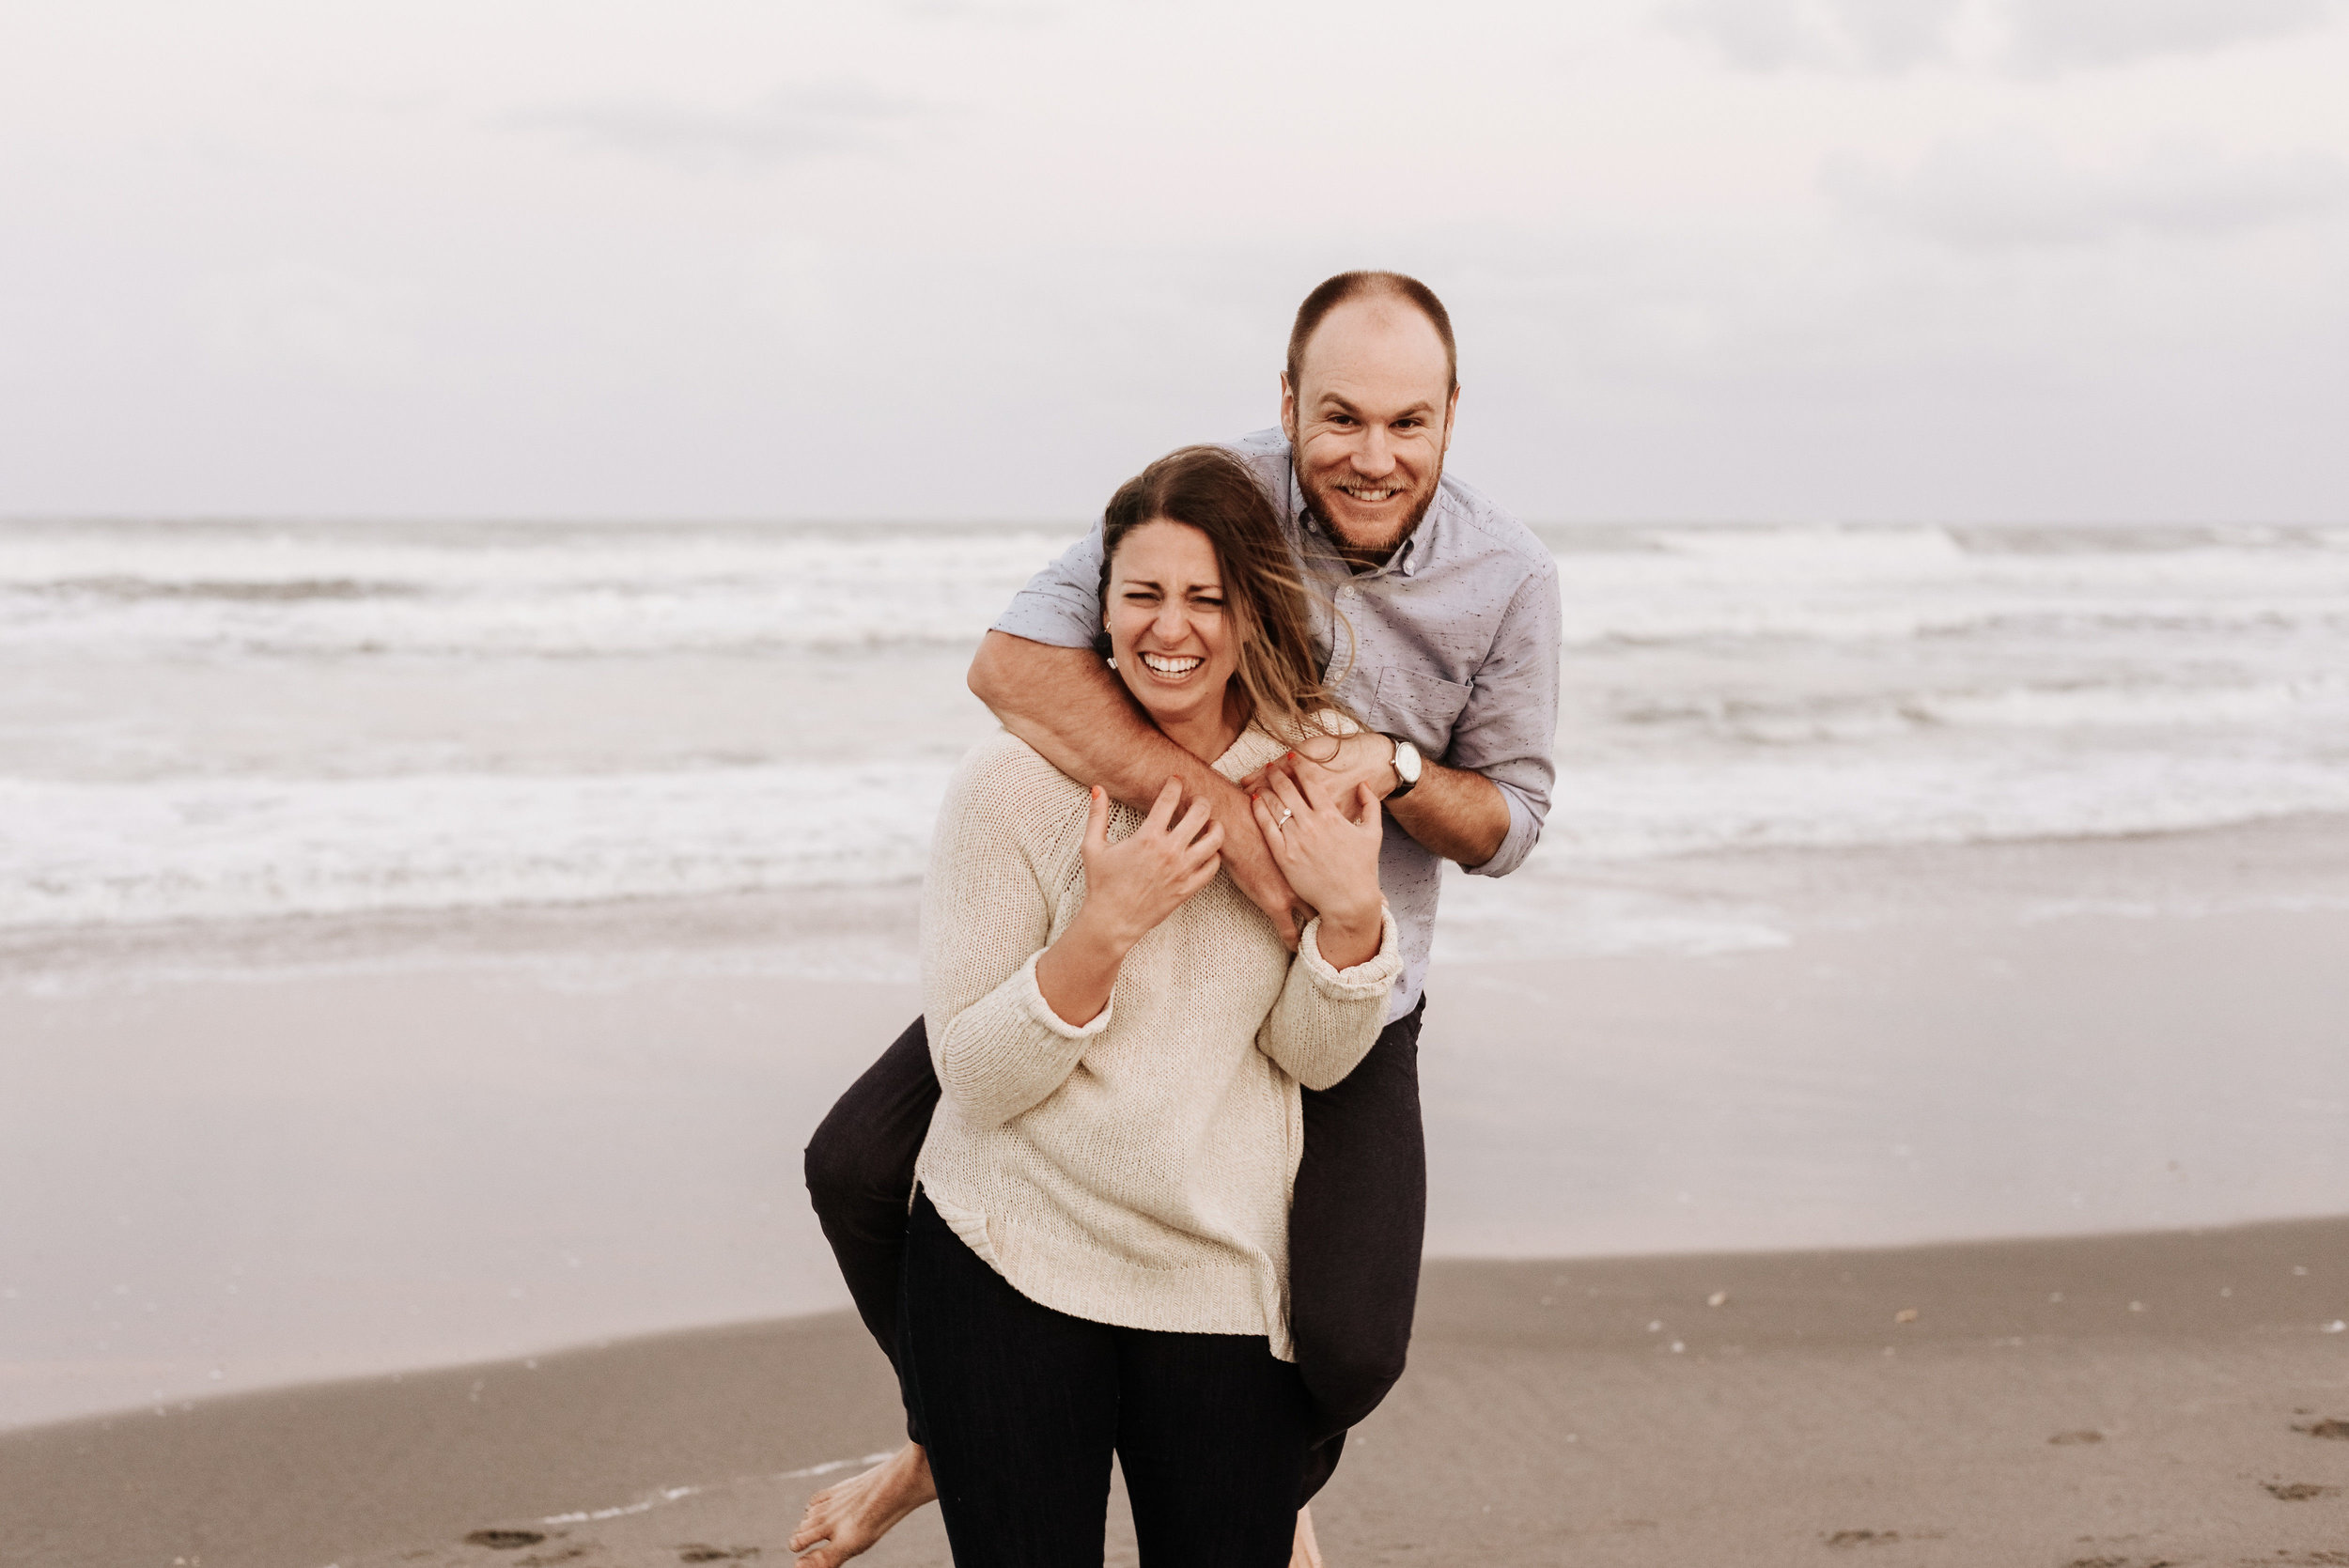 Courtney_Luke_Wedding_Engagement_Session_Cocoa_Beach_Florida_Photography_by_V_5019.jpg